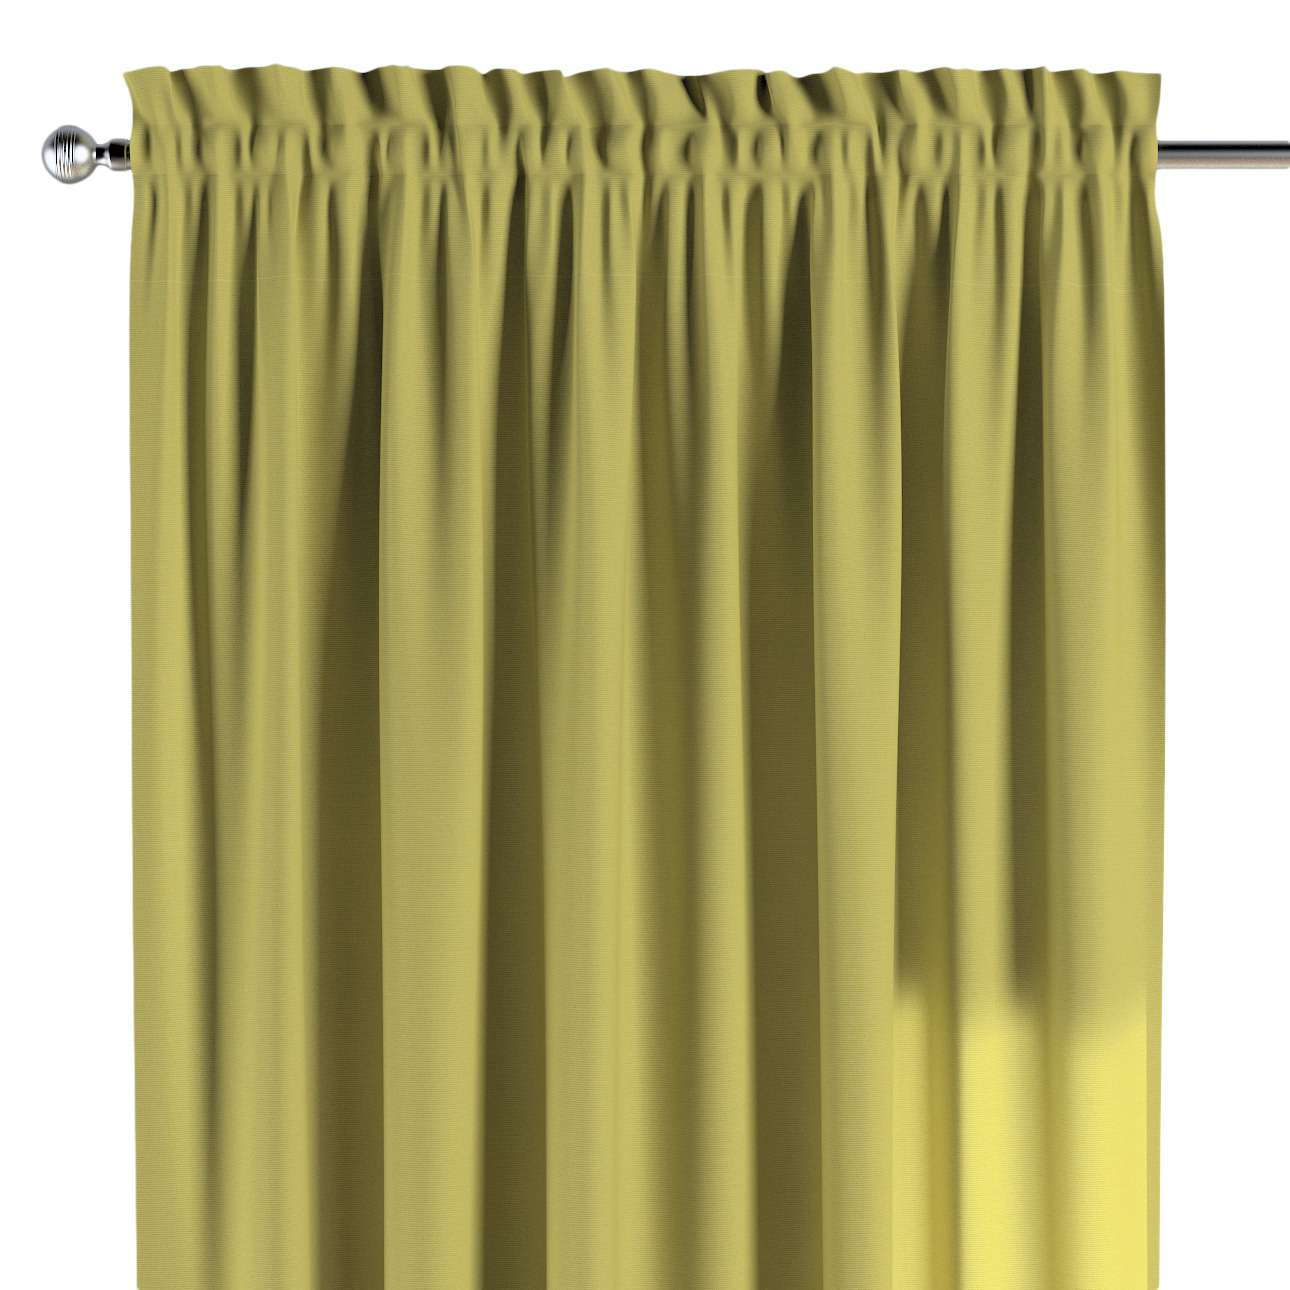 Slot and frill curtains 130 × 260 cm (51 × 102 inch) in collection Loneta , fabric: 133-23